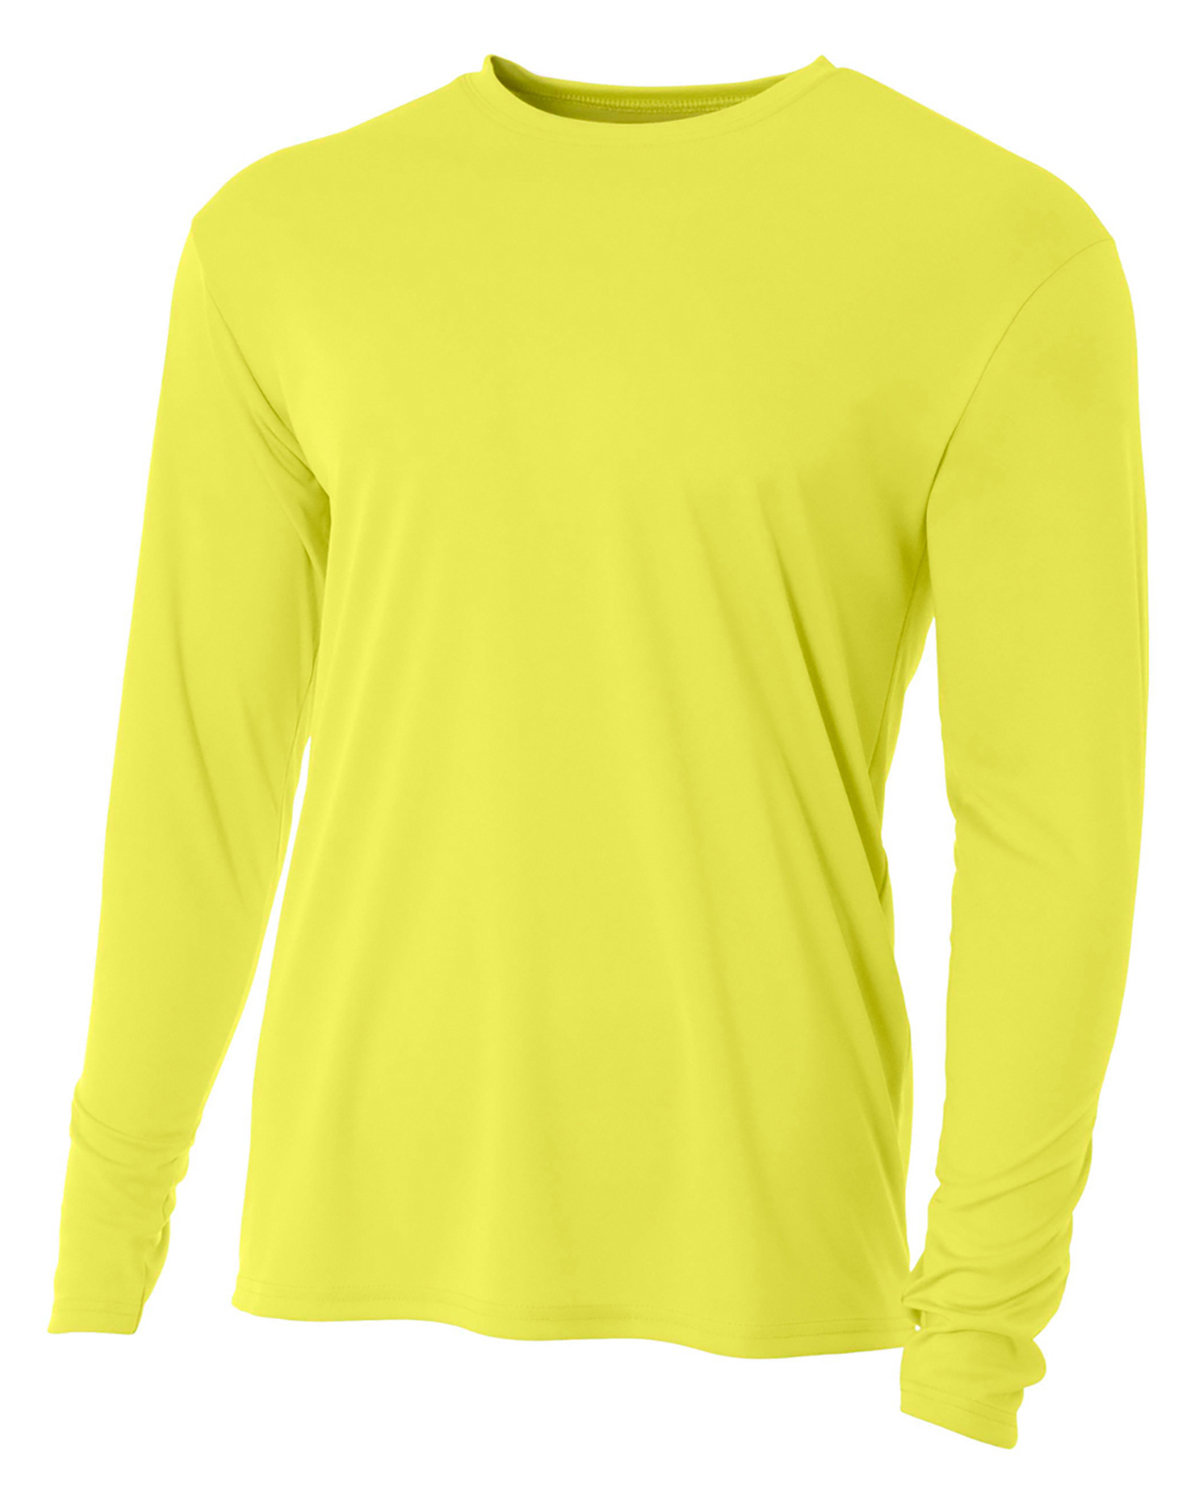 A4 Youth Long Sleeve Cooling Performance Crew Shirt SAFETY YELLOW